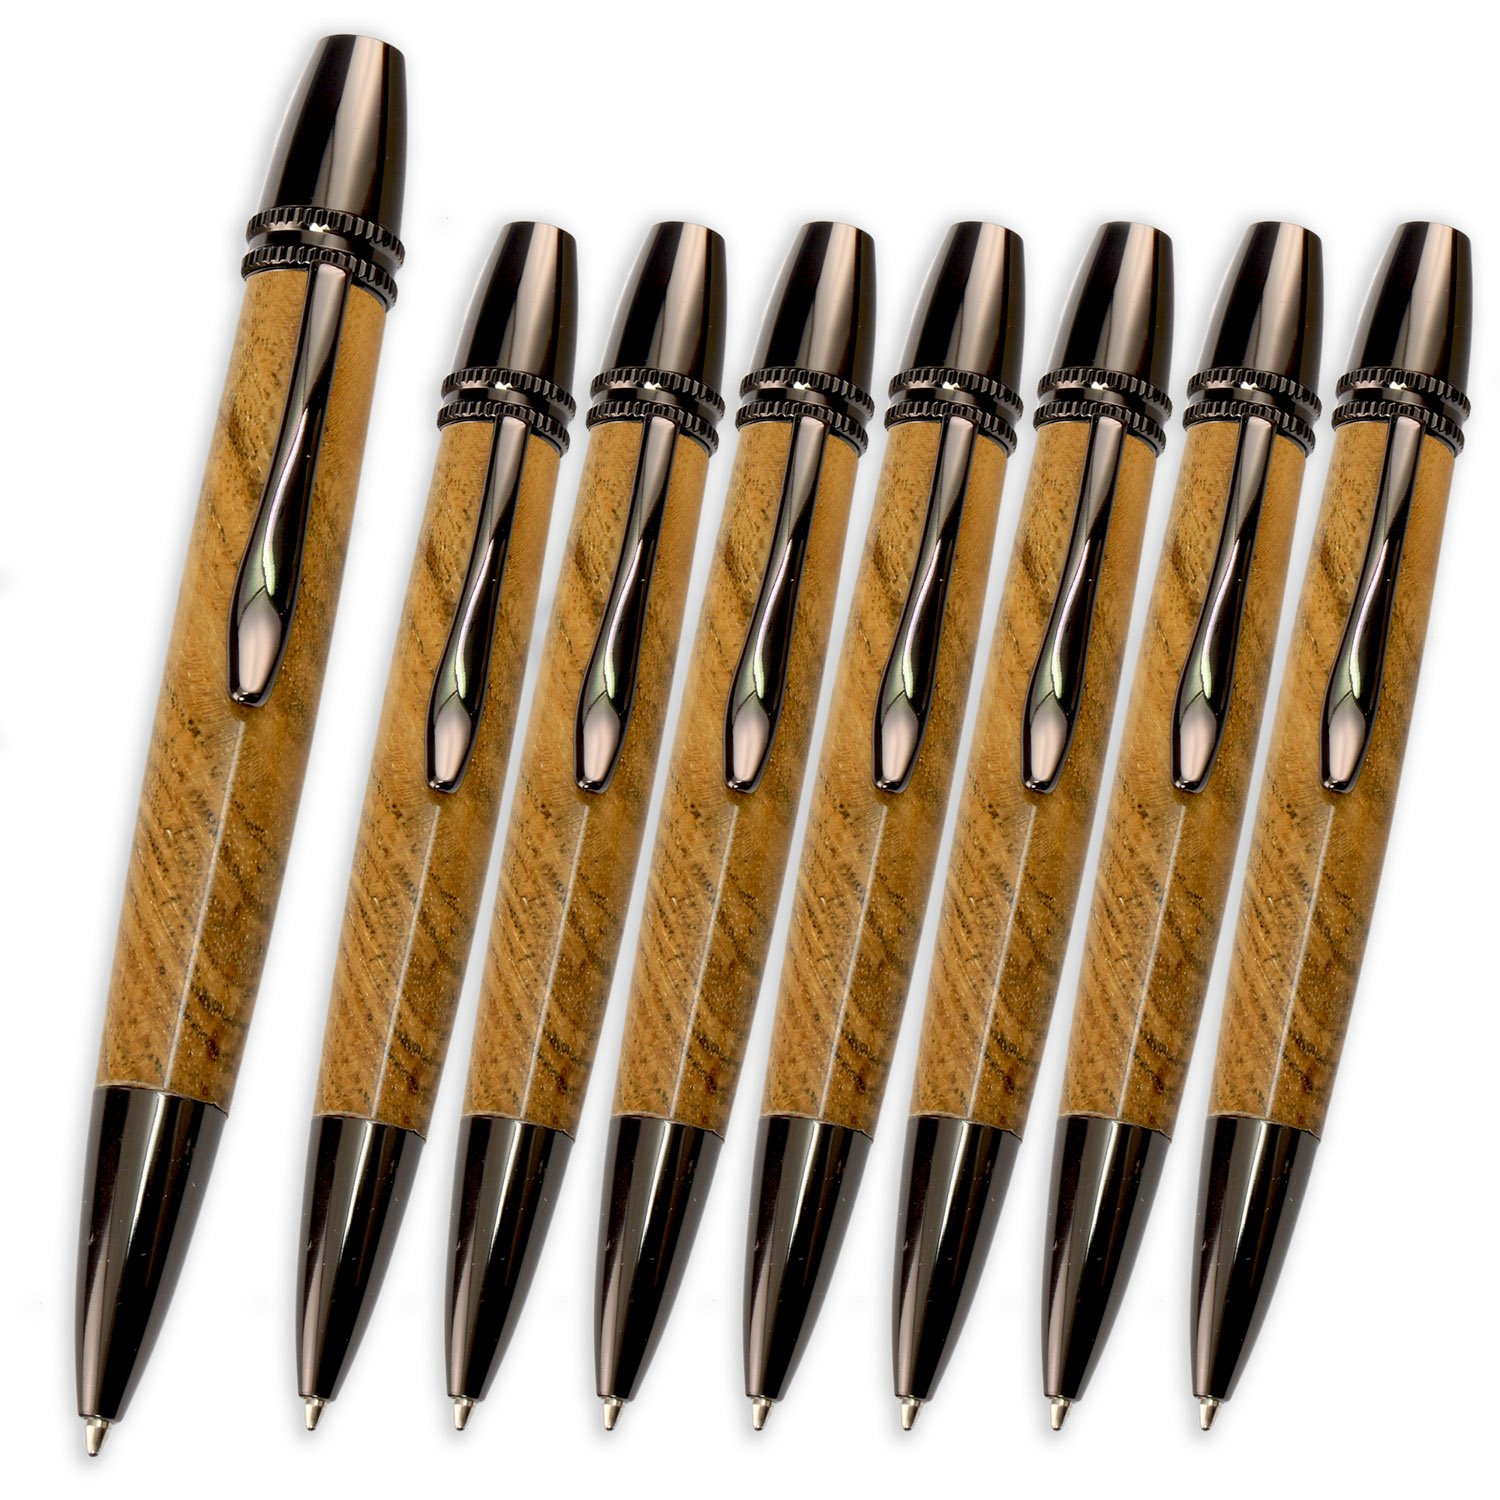 Legacy Woodturning, Polaris Twist Pen Kit, Many Finishes, Multi-Packs by Legacy Woodturning